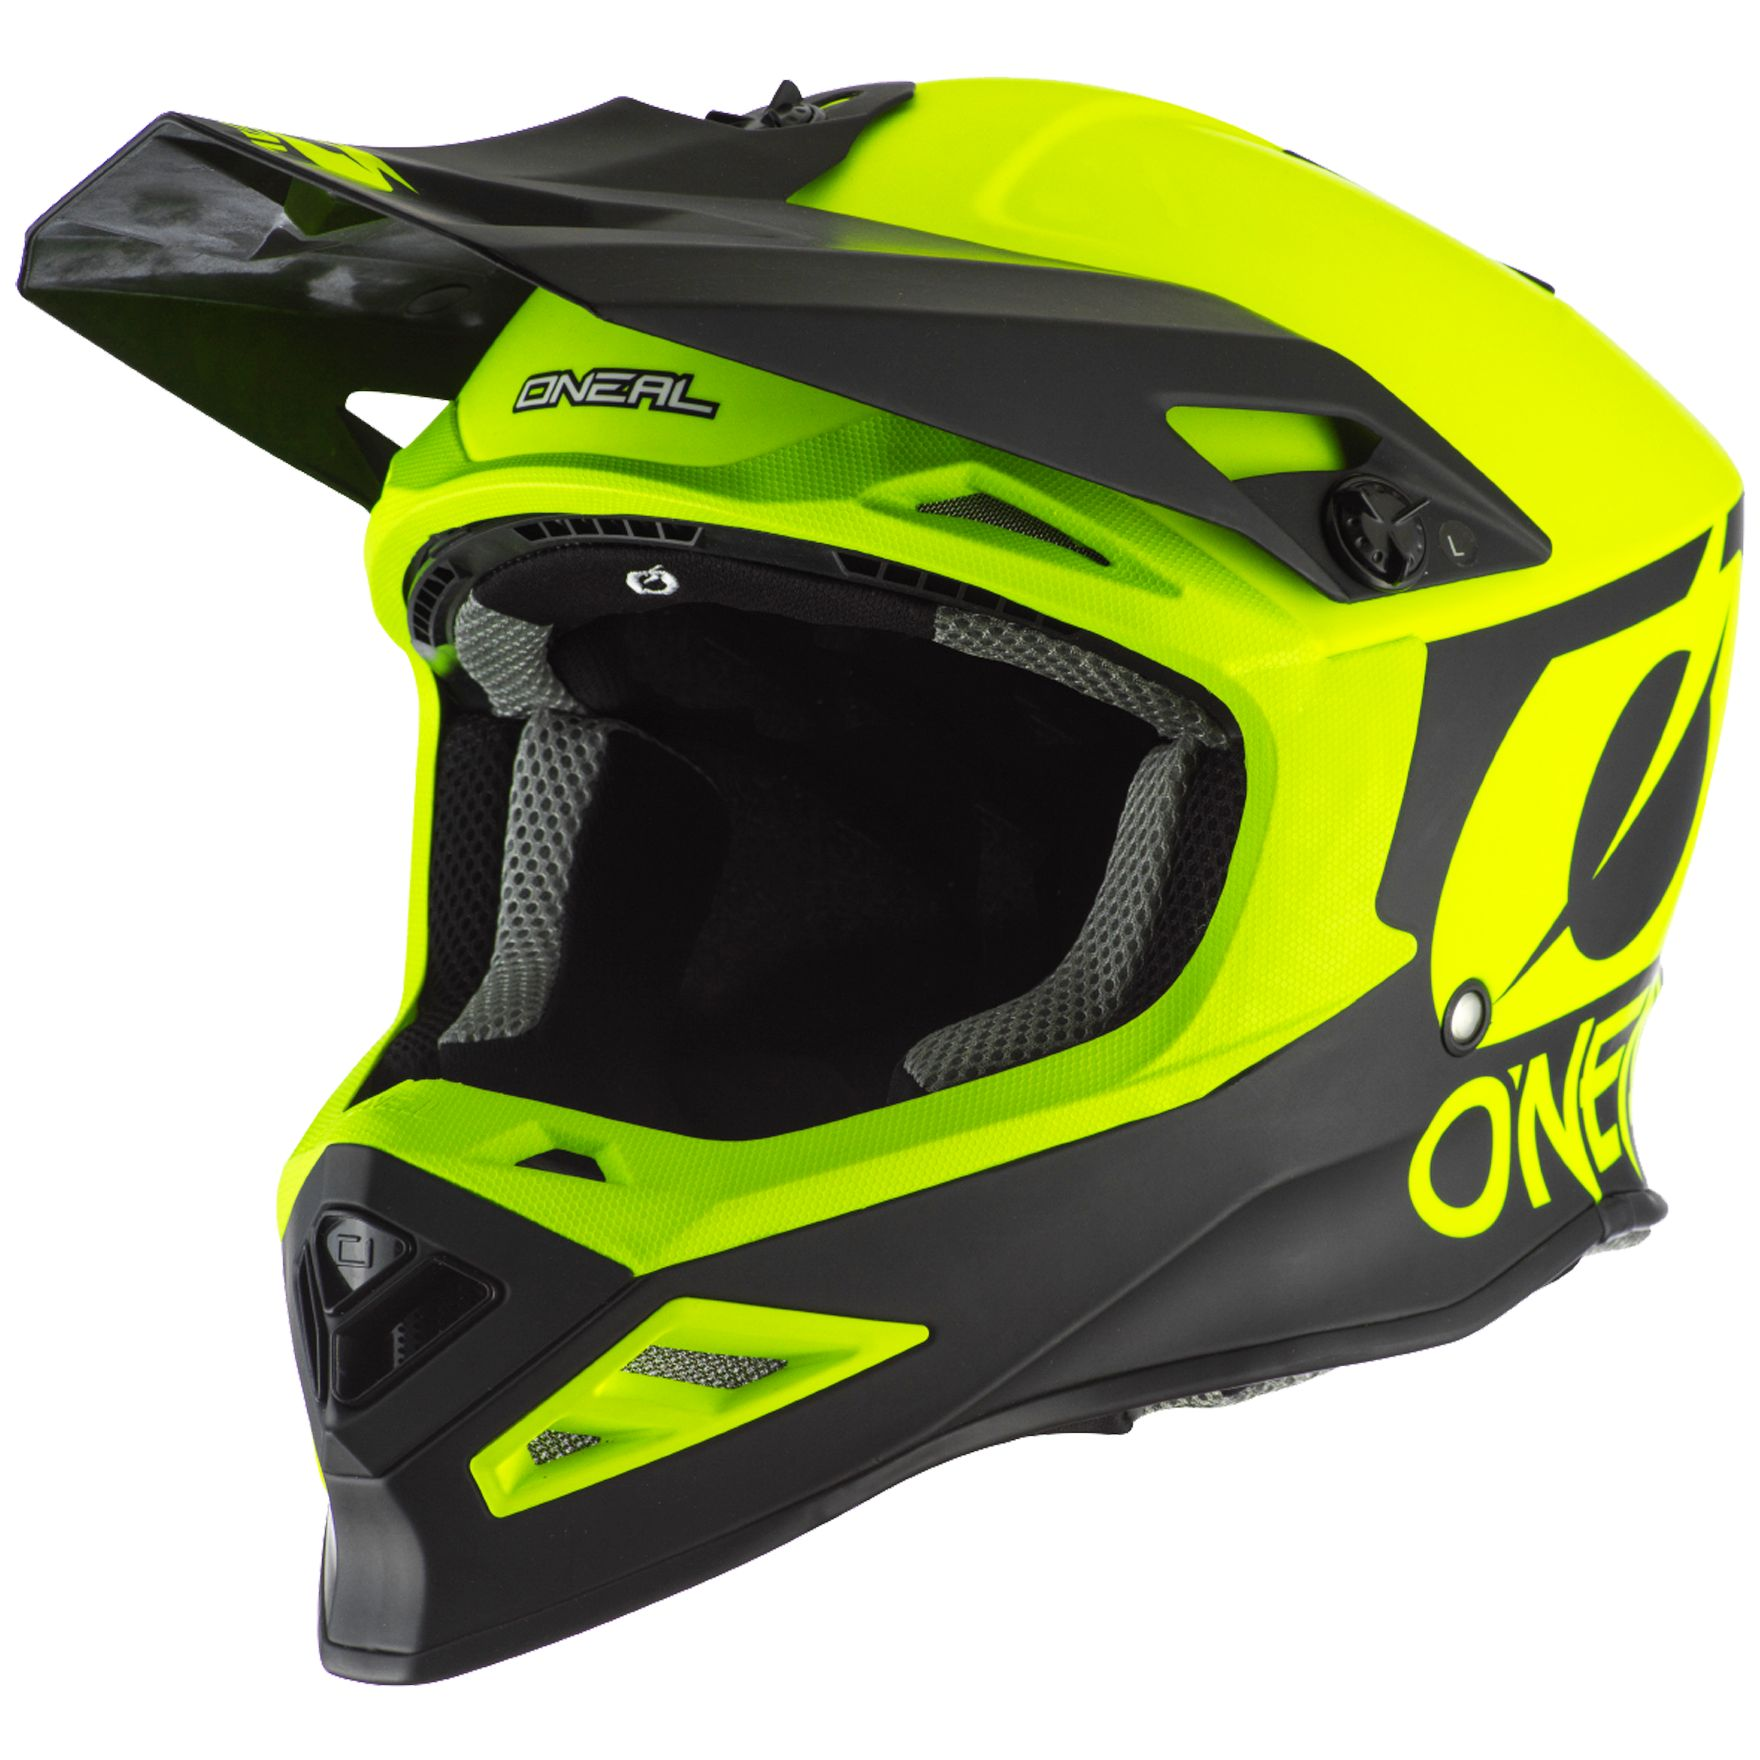 Casque cross O'Neal 8 SERIES - 2T - NEON YELLOW 2020